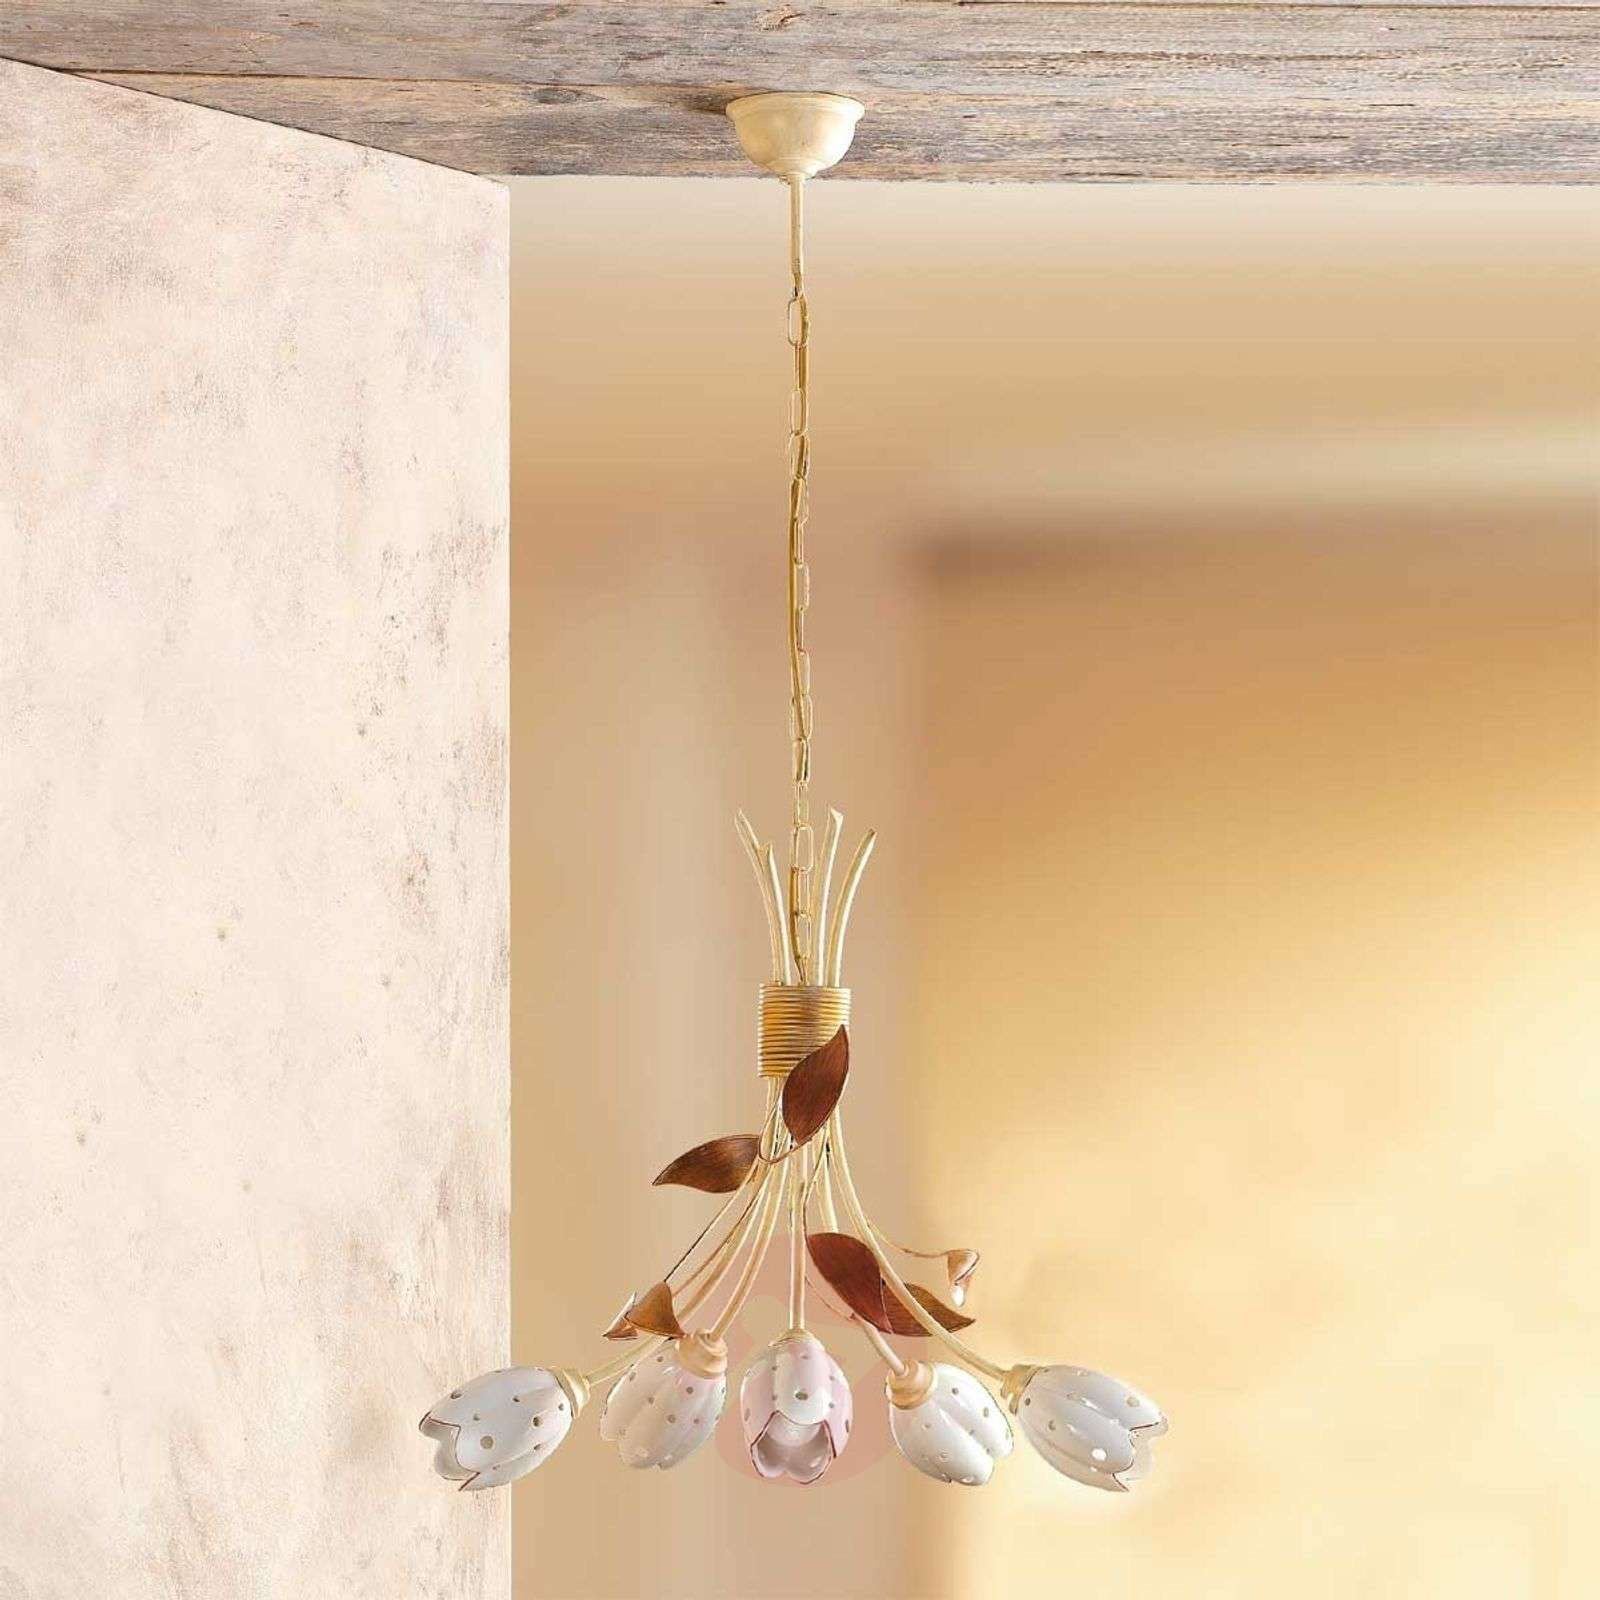 Suspension florale à 5 lampes TULIPANO